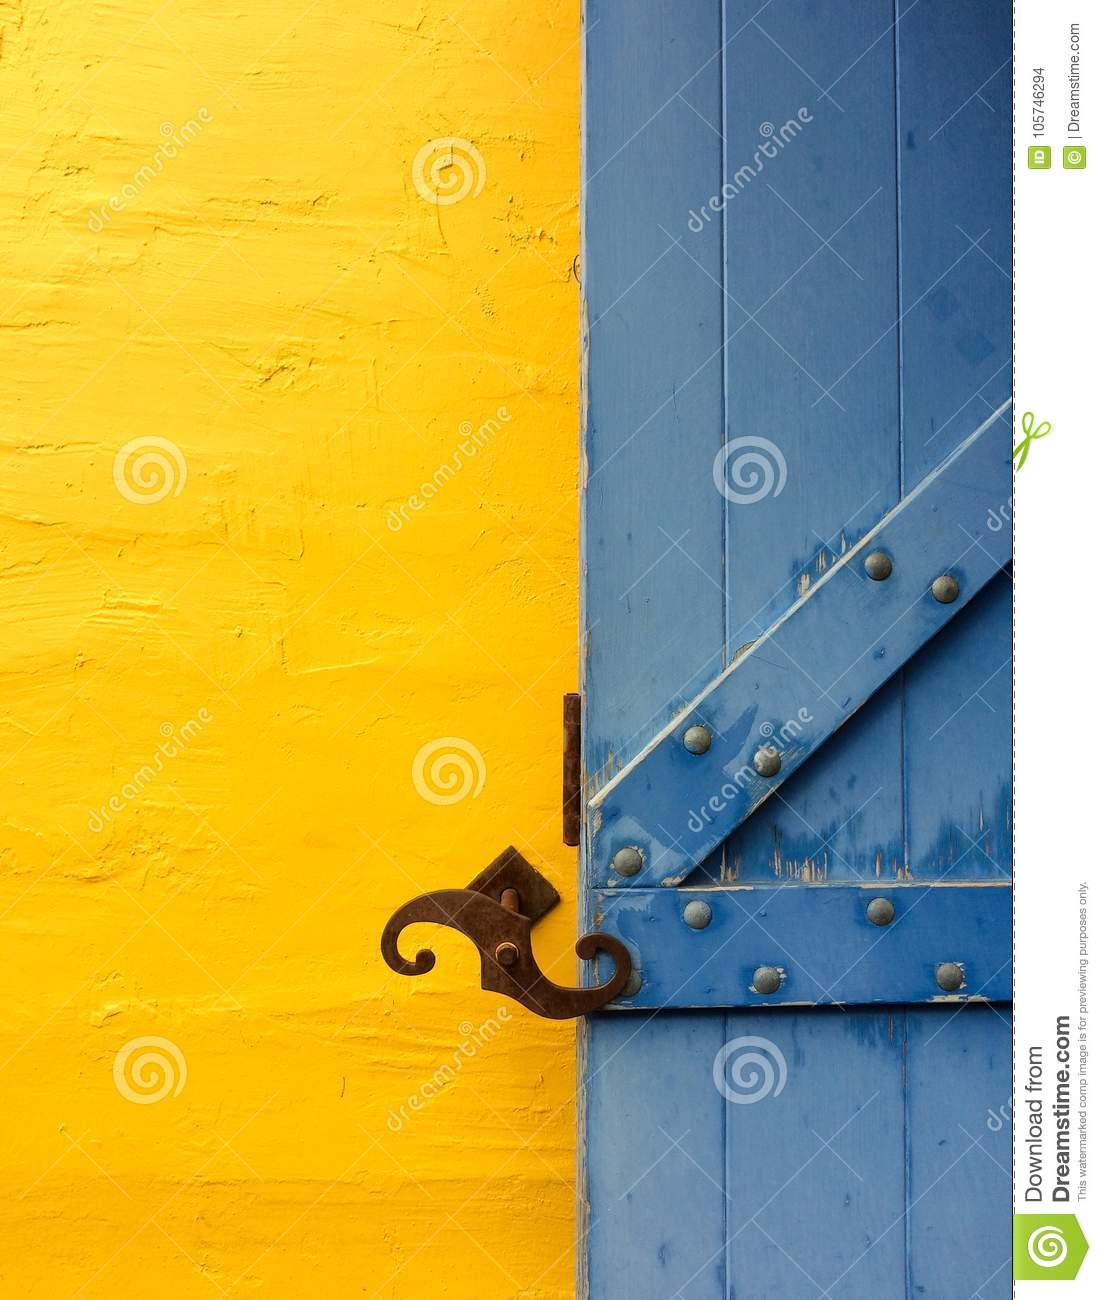 Window Shutter And Wall Display Complementary Colors Stock Photo ...